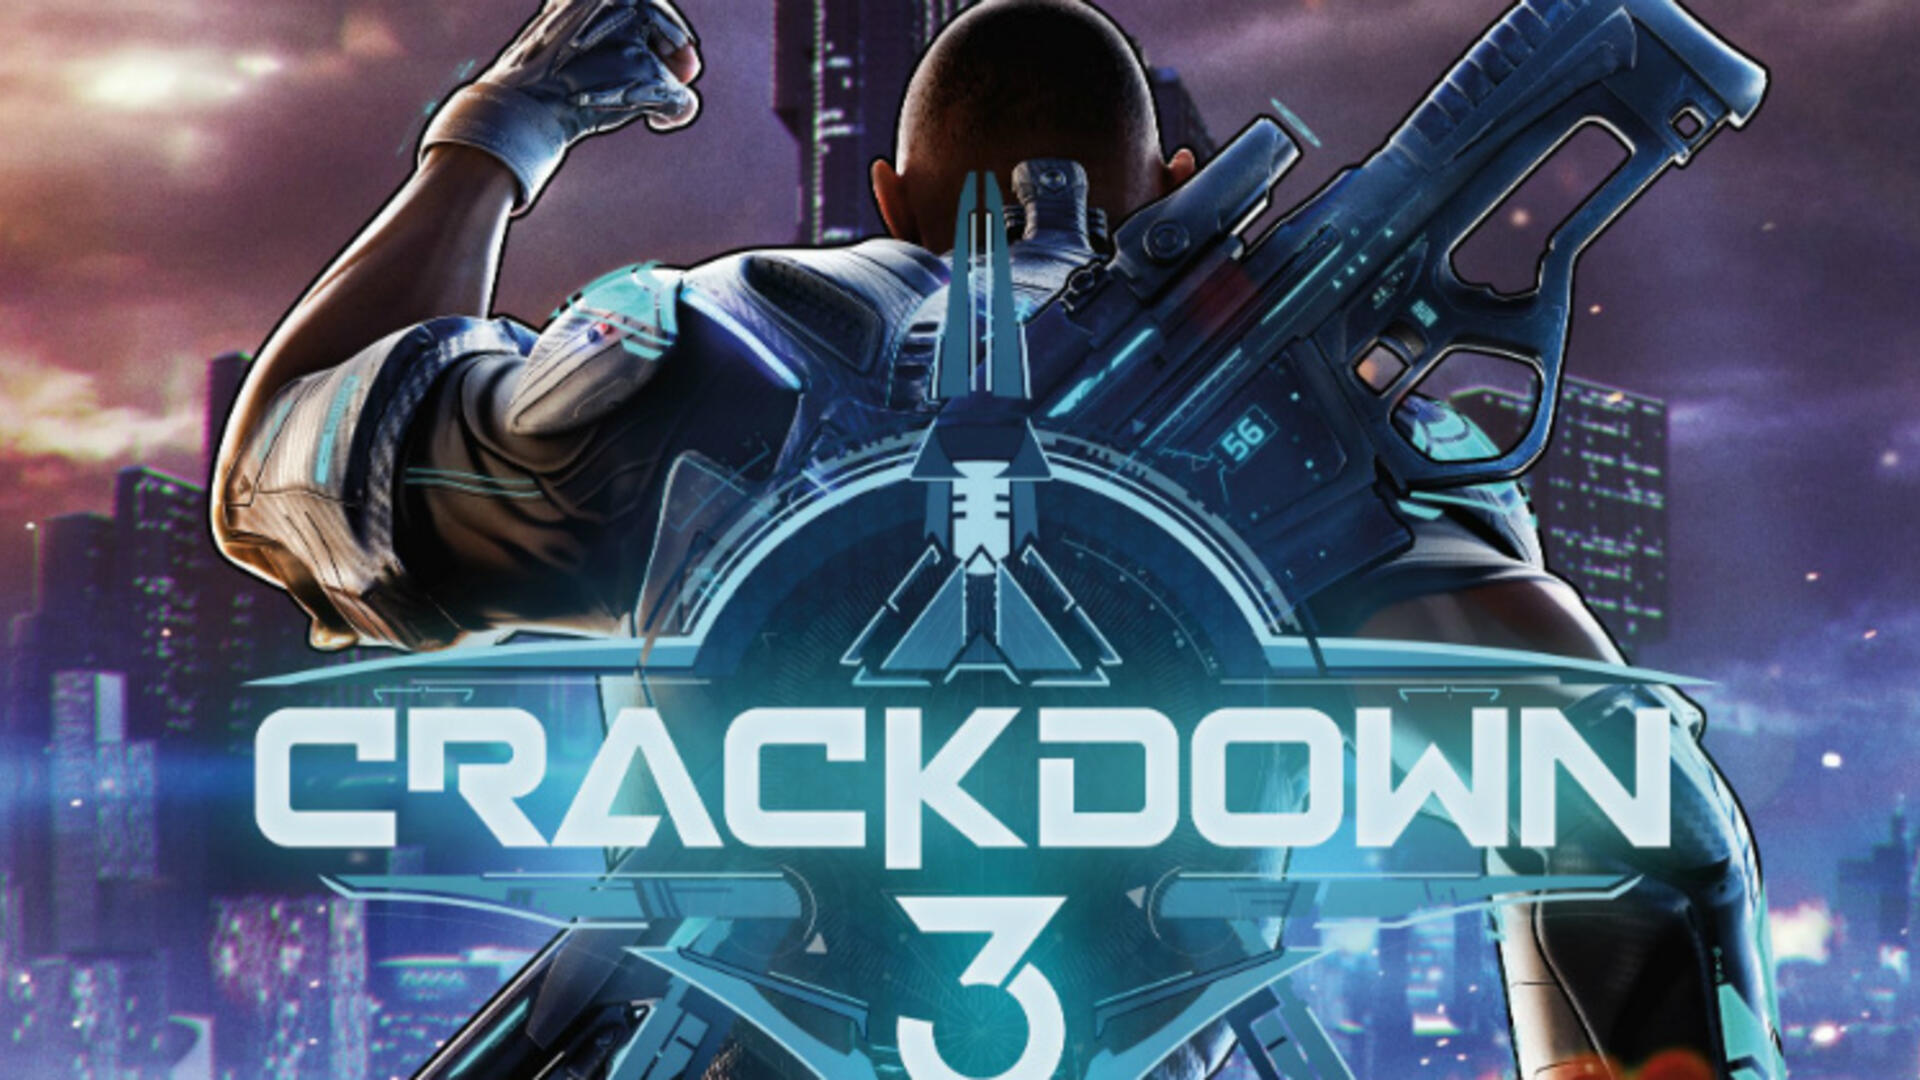 Crackdown 3 Pushed Back Again, Into 2018